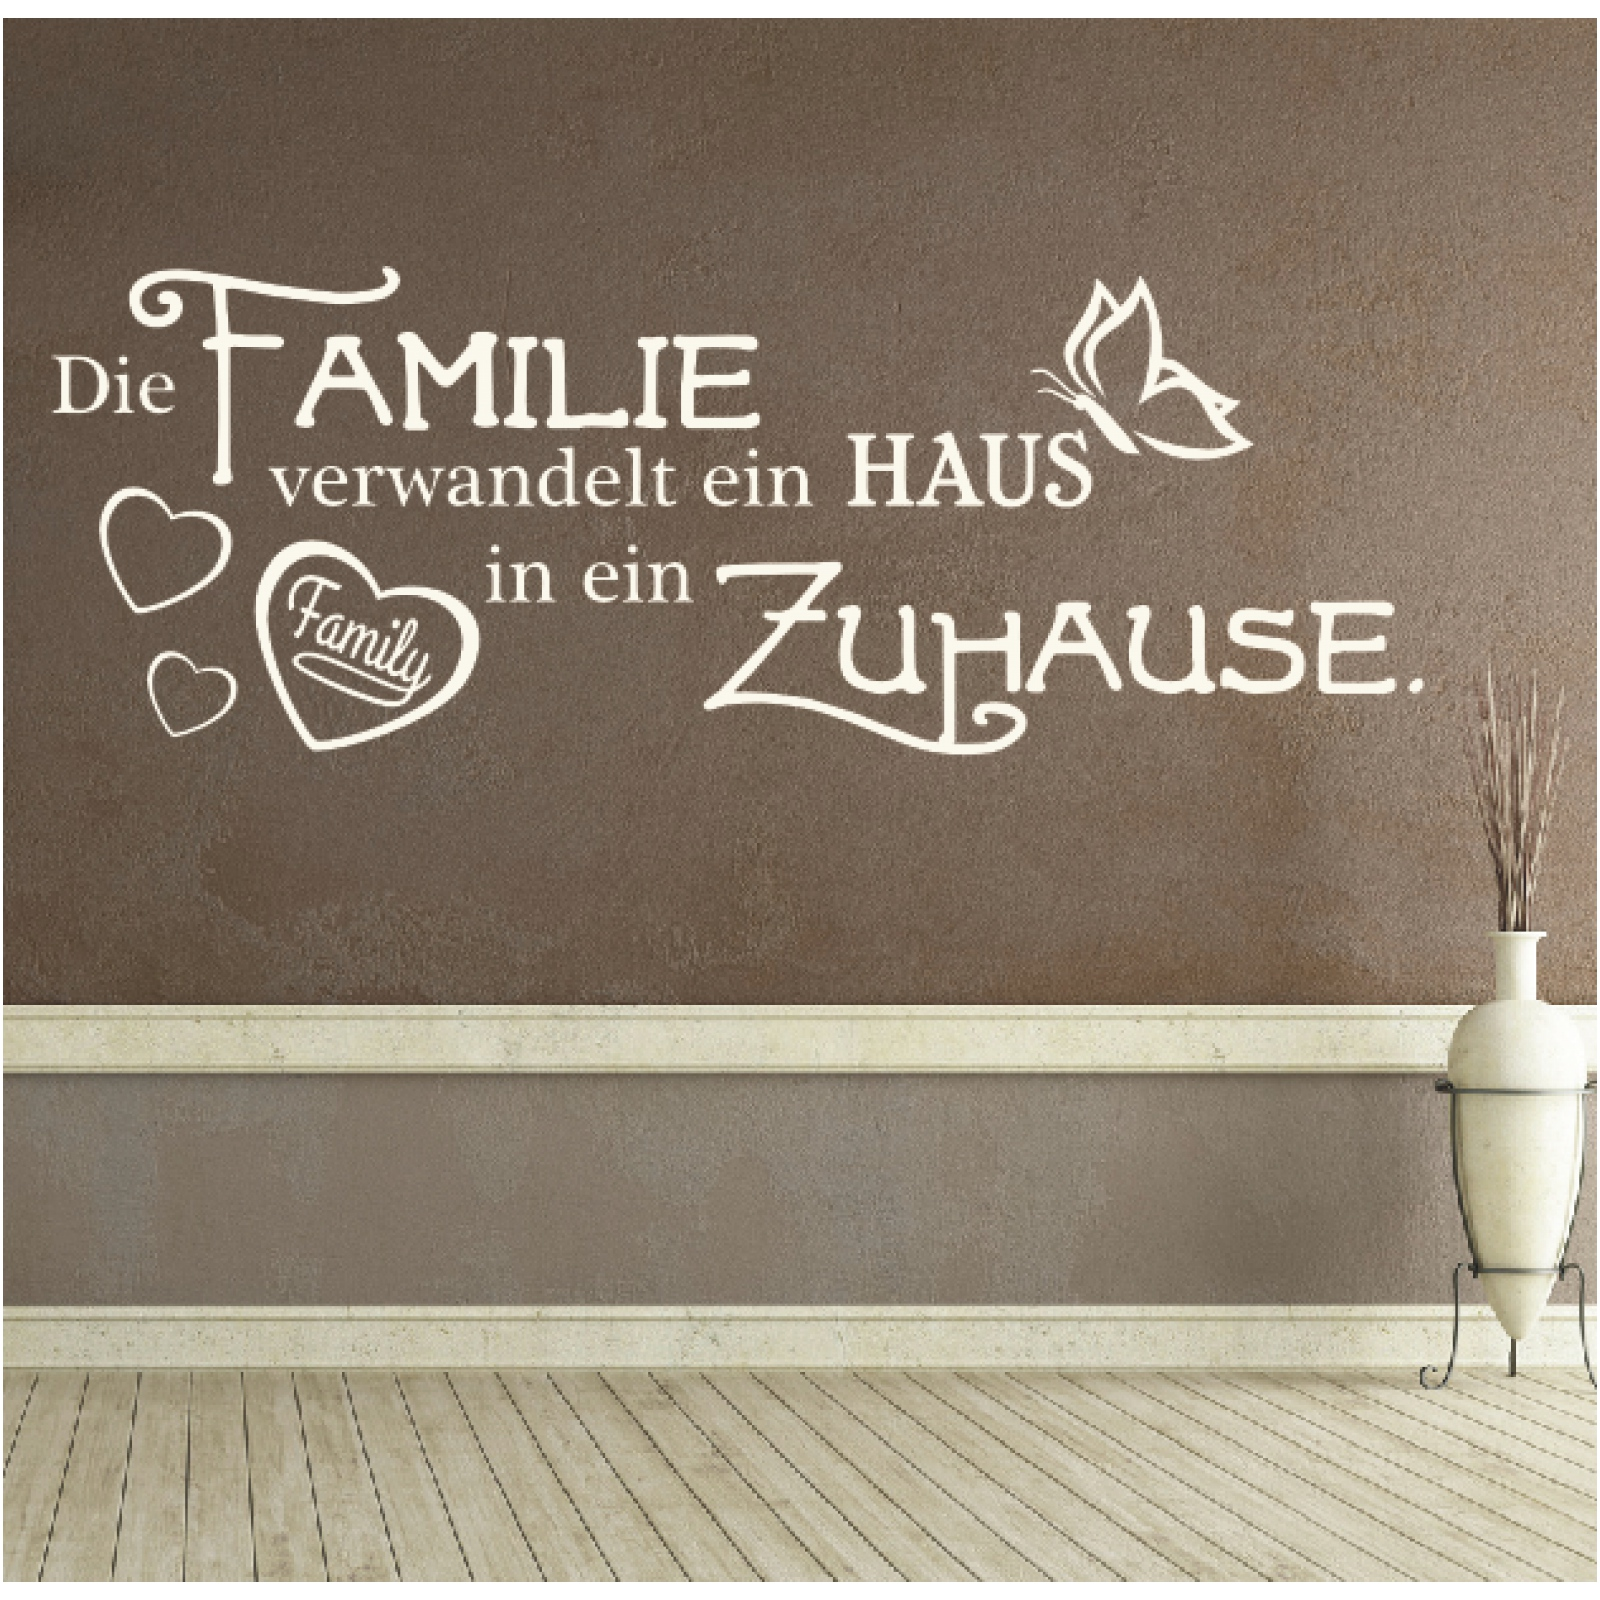 wandtattoo spruch die familie verwandelt haus in zuhause sticker wandaufkleber ebay. Black Bedroom Furniture Sets. Home Design Ideas